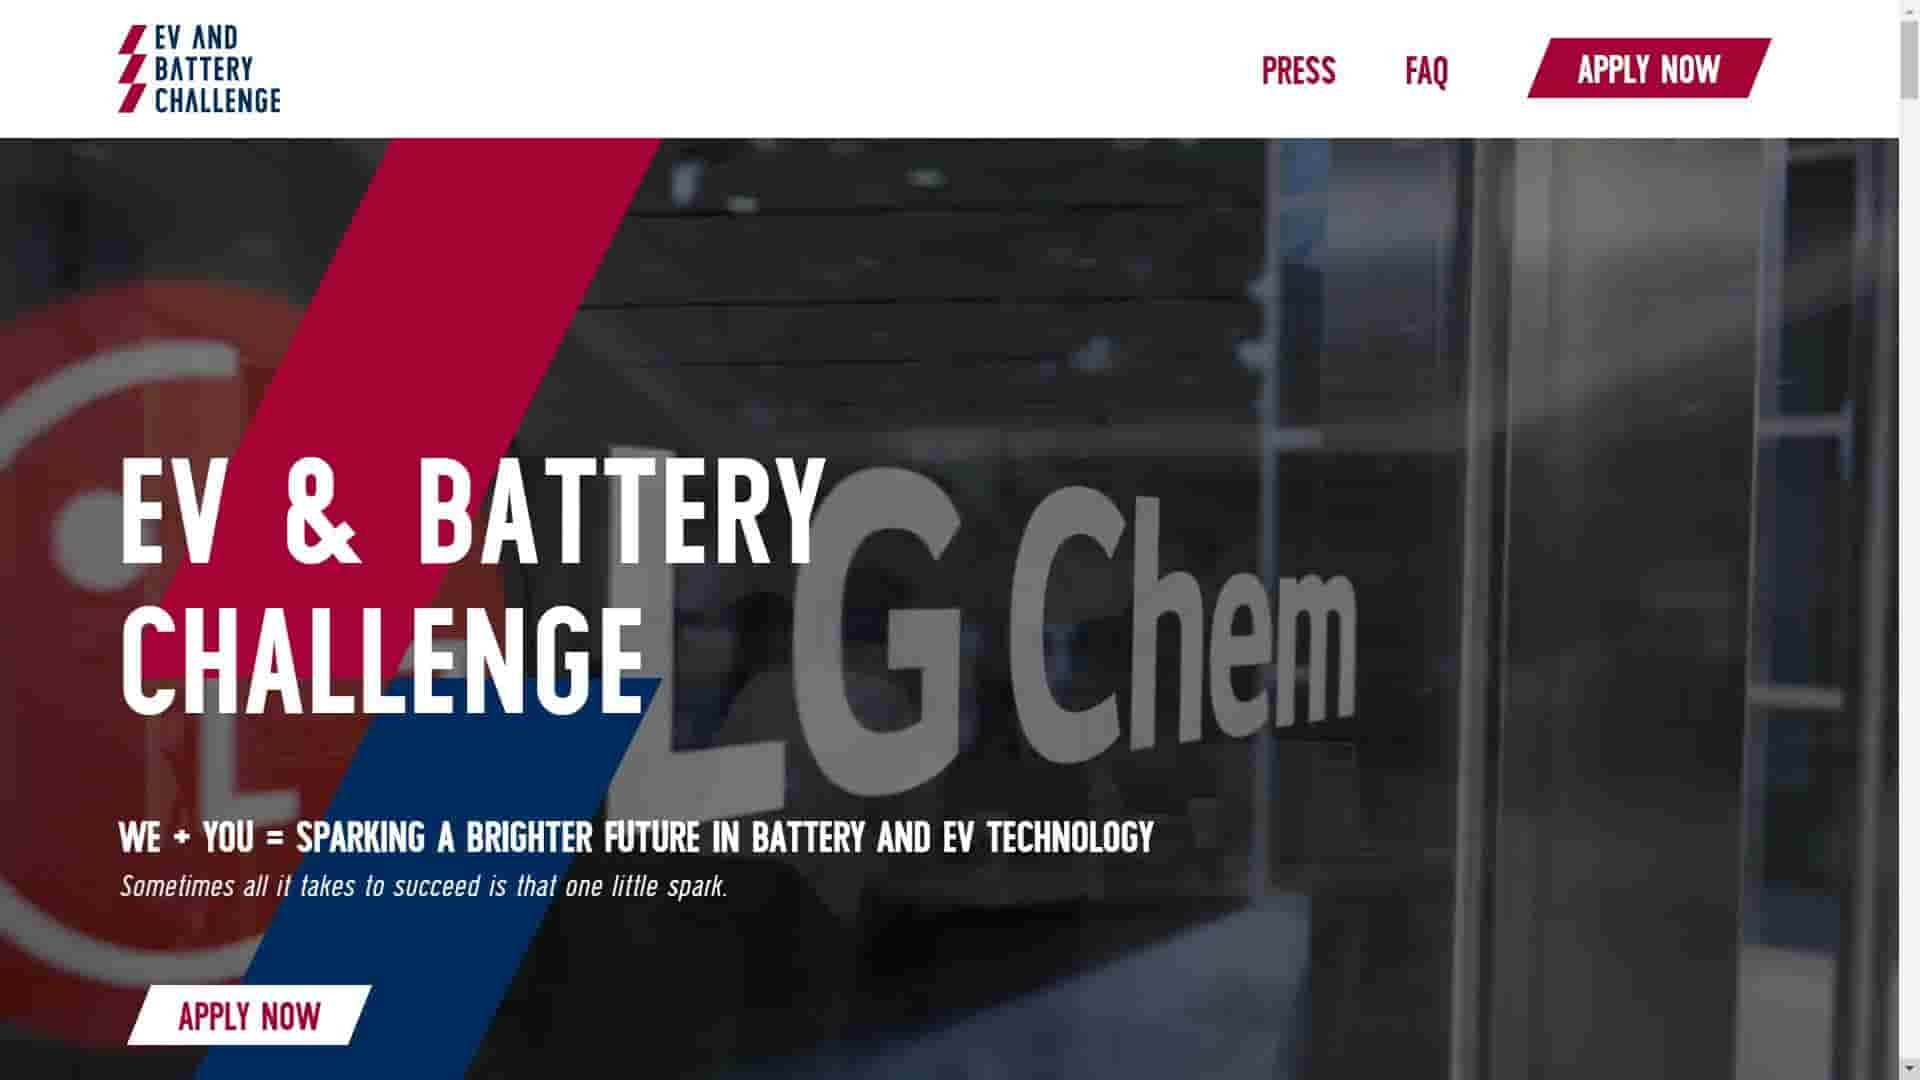 Hyundai·Kia Motors-LG Chem discovers global promising startups